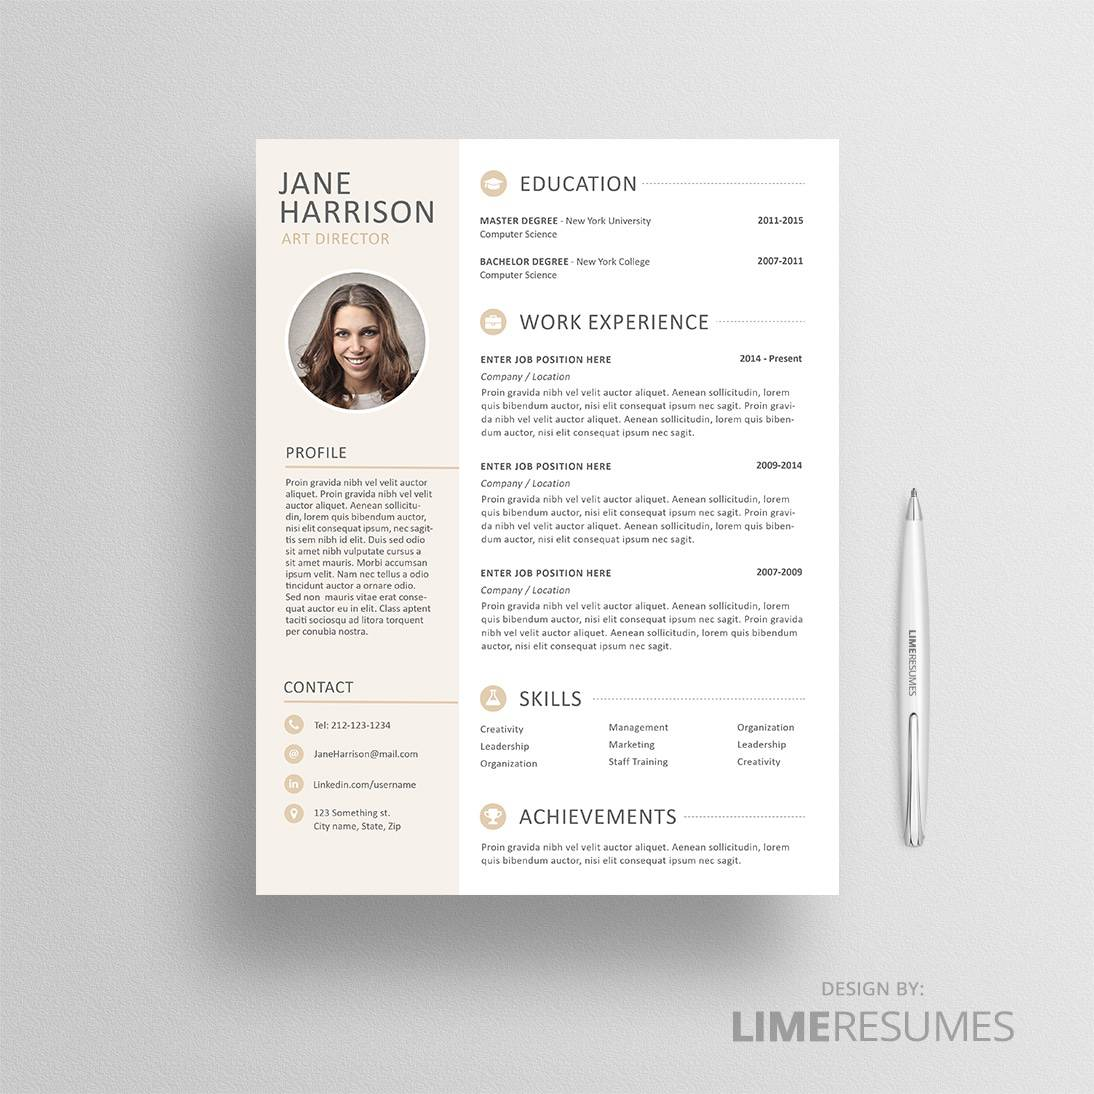 Professional Resume Templates with Cover Letters – LimeResumes